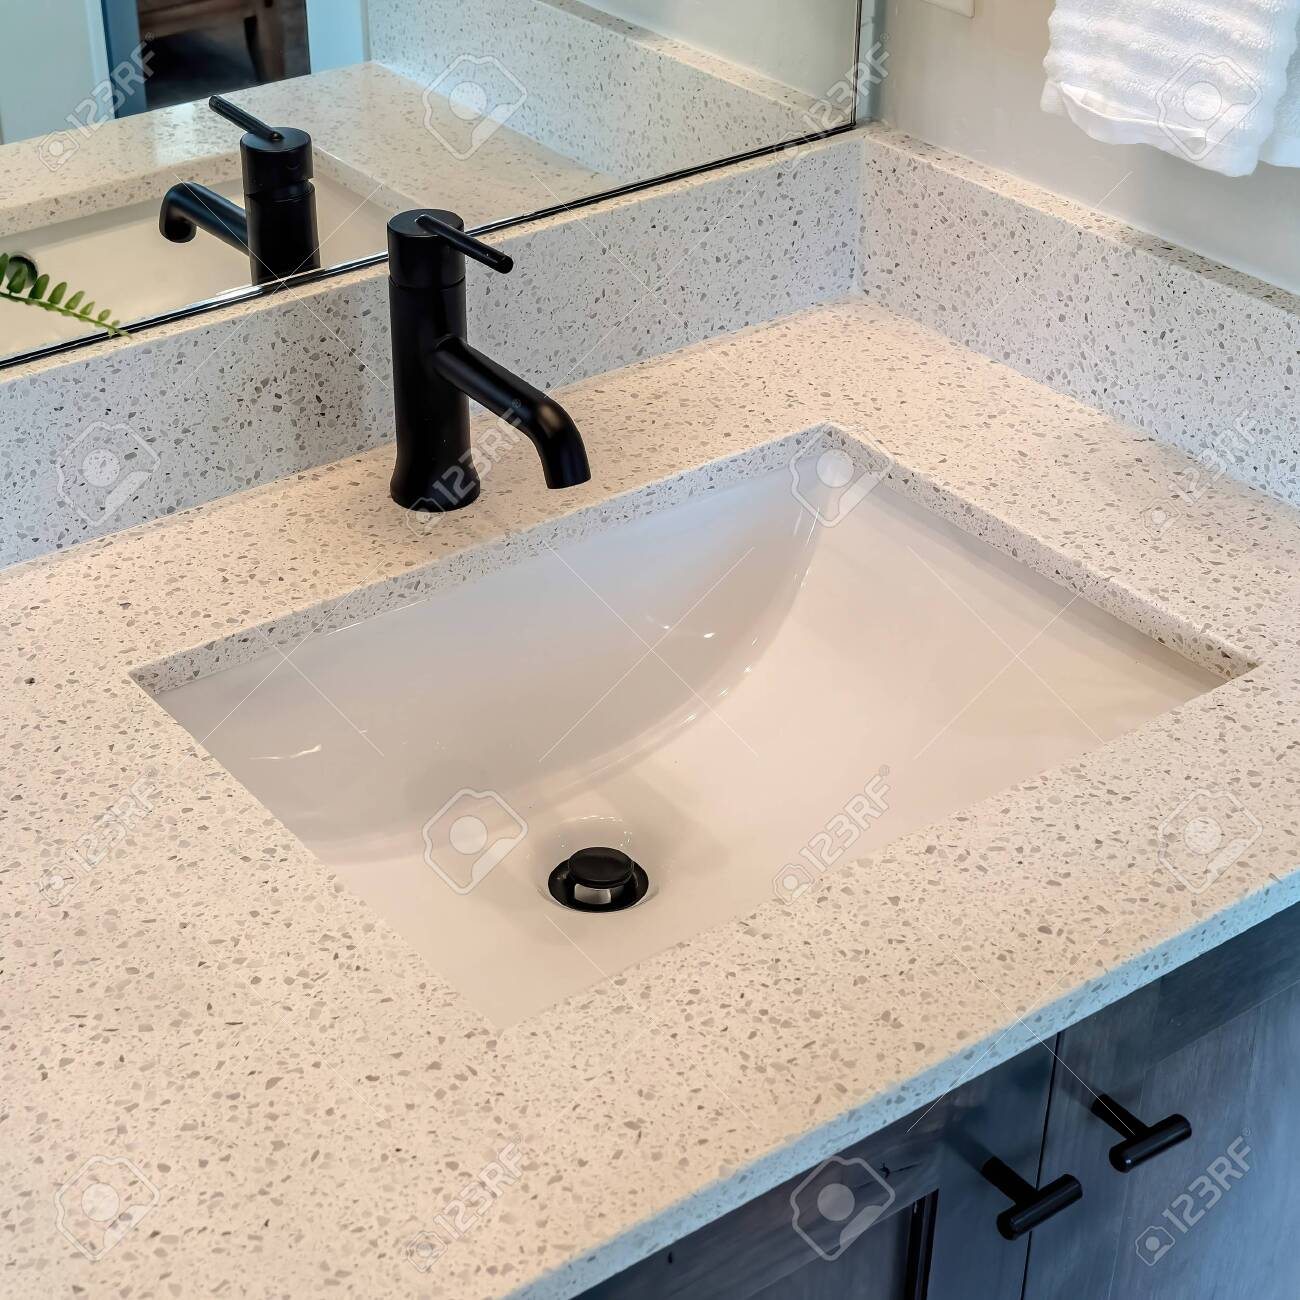 https www 123rf com photo 149183842 square bathroom white countertop with single basin undermount sink and black faucet cabinets hanging html